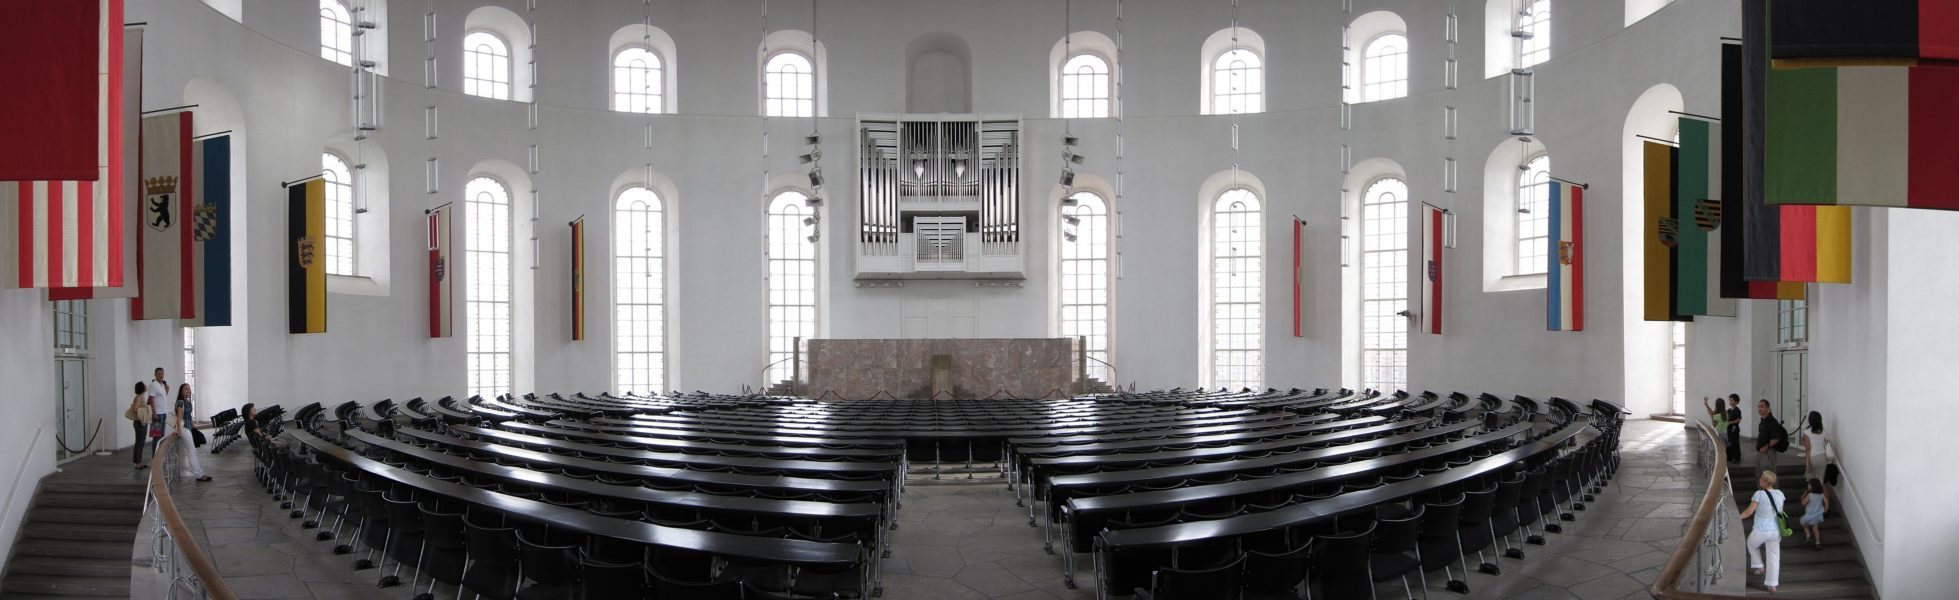 Paulskirche_Frankfurt am Main_Germany